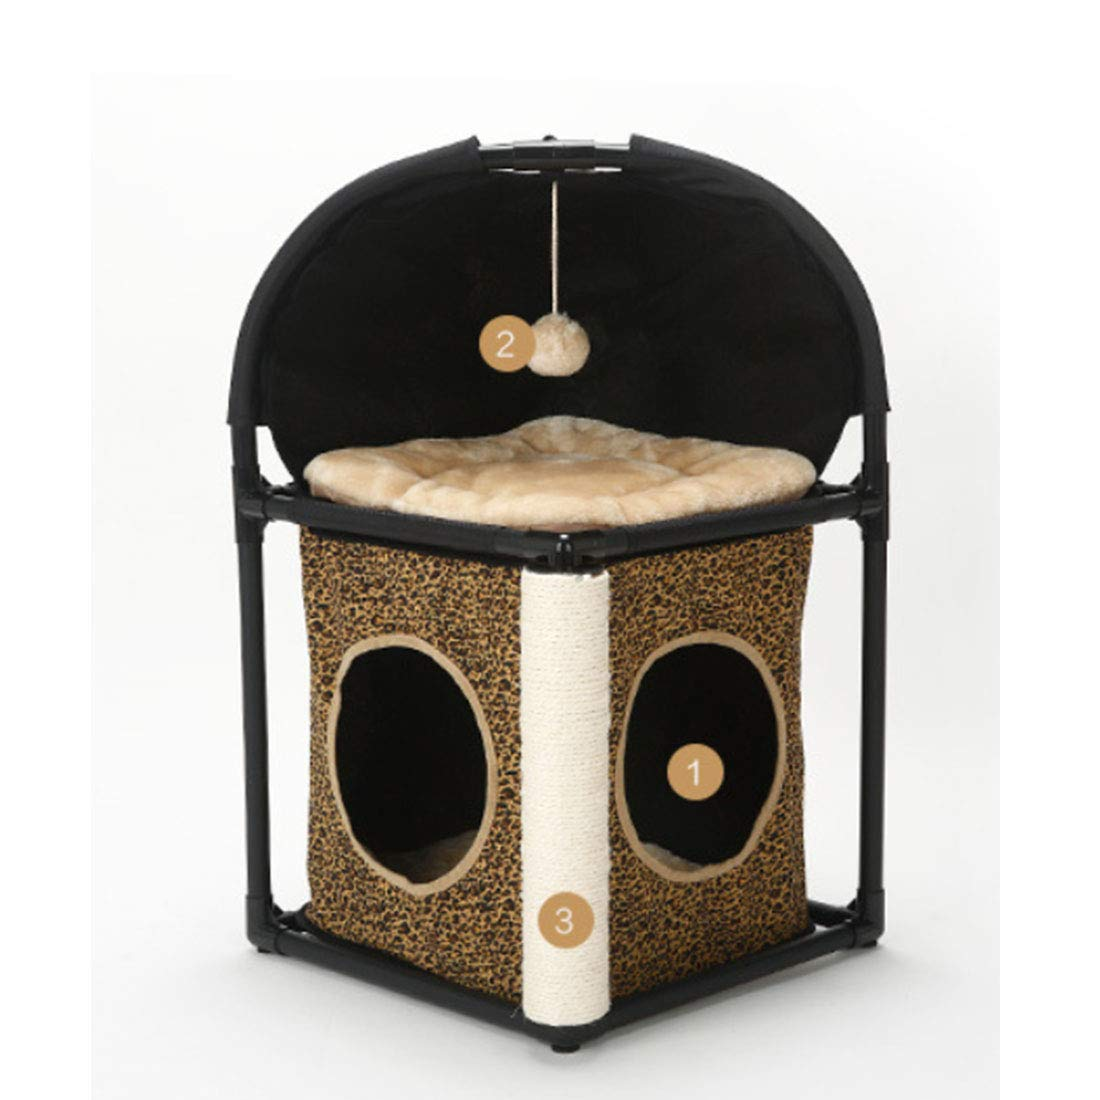 Leopard print Hyue Cat House Easy Condo Kitten Activity Tower Climbing Frame Nest Jumping Platform Detachable Combination Nest (color   Leopard Print)